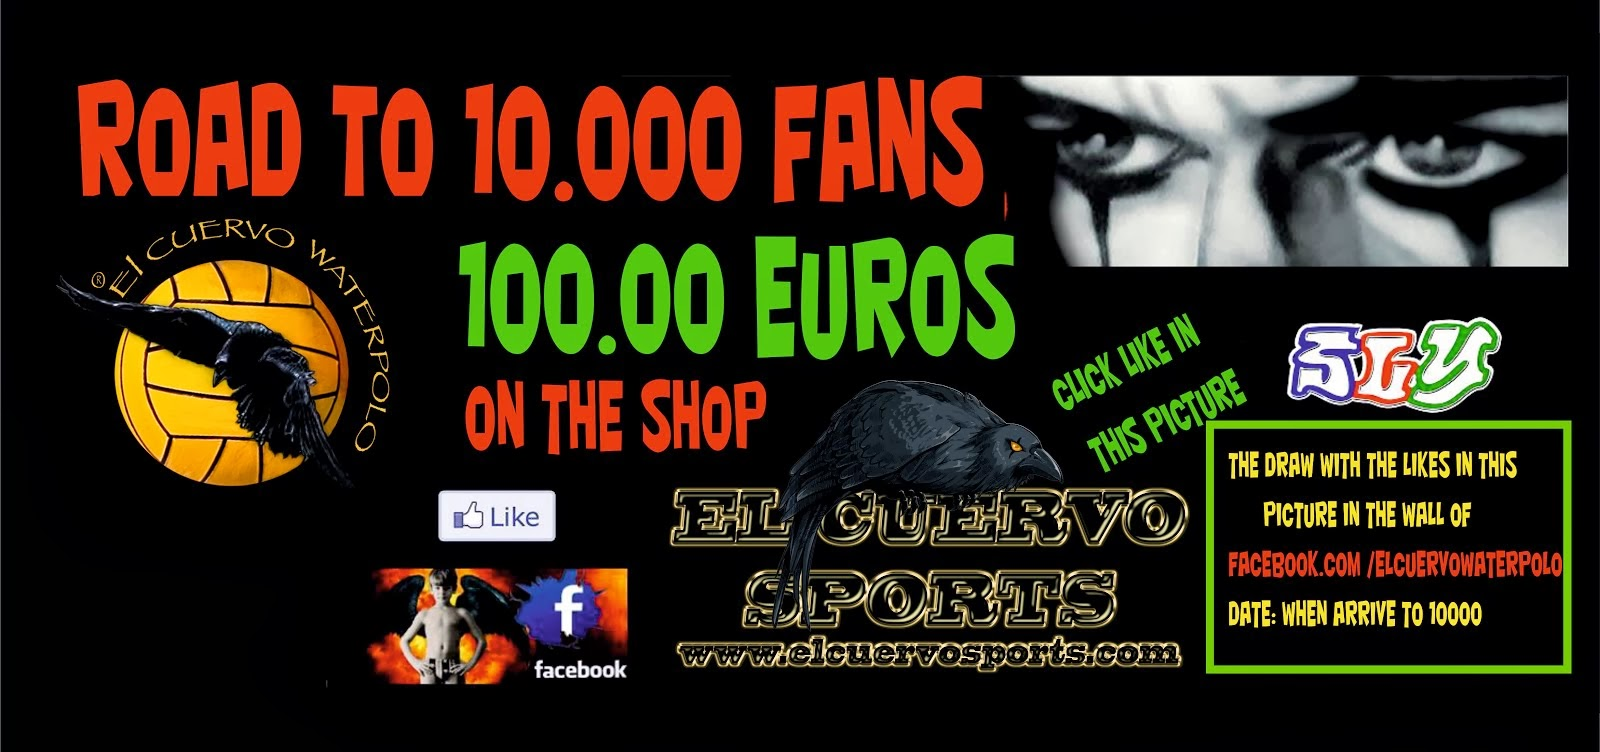 DRAW 100 EUROS ON THE SHOP